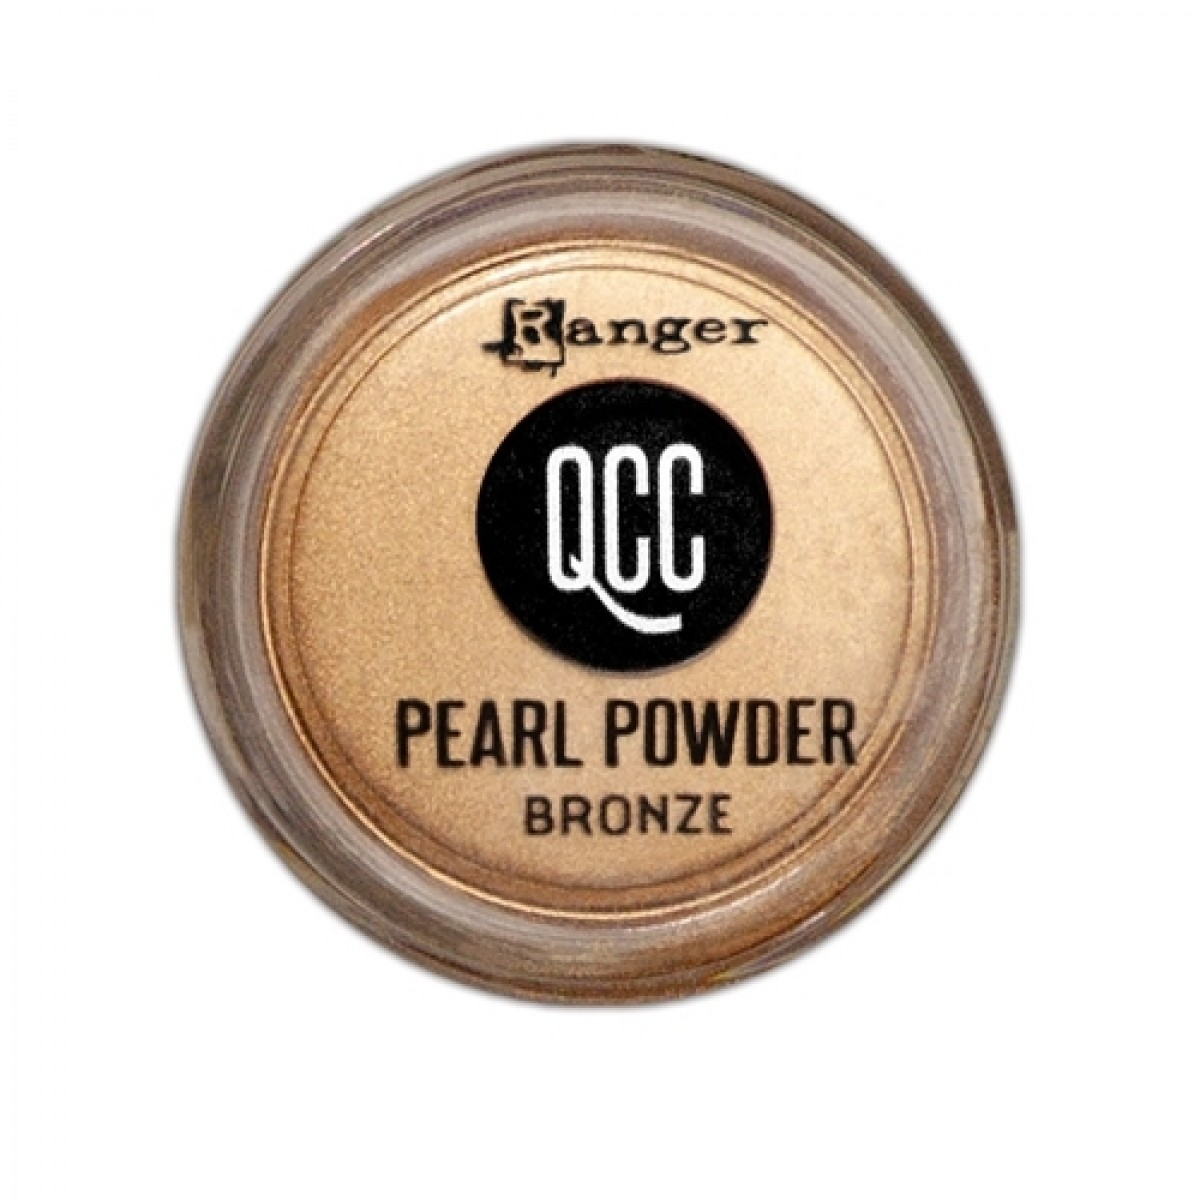 Ranger Pearl Powder, Bronze